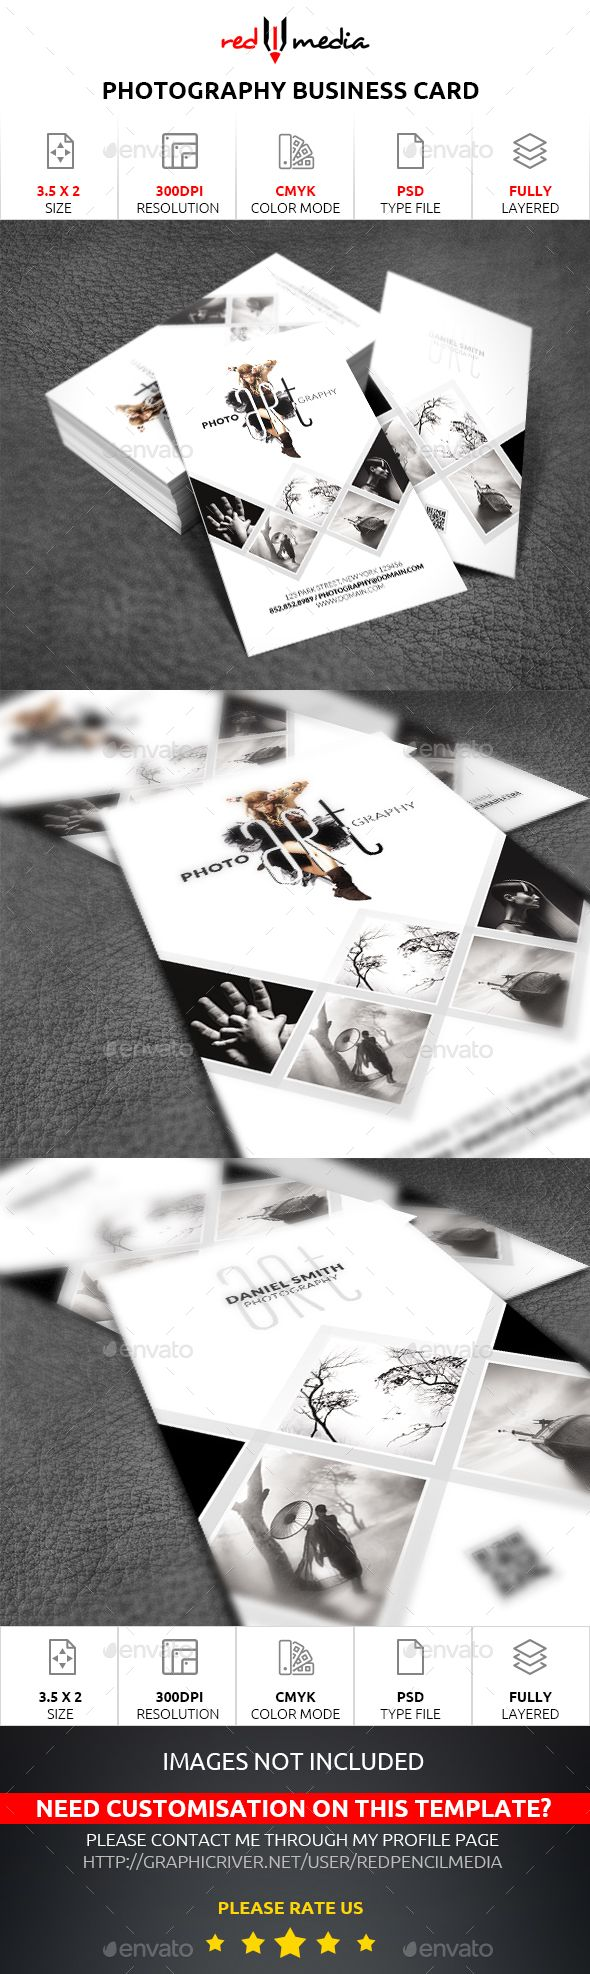 Photography Business Card - Business Cards Print Templates Download here : http://graphicriver.net/item/photography-business-card/15751340?s_rank=295&ref=Al-fatih